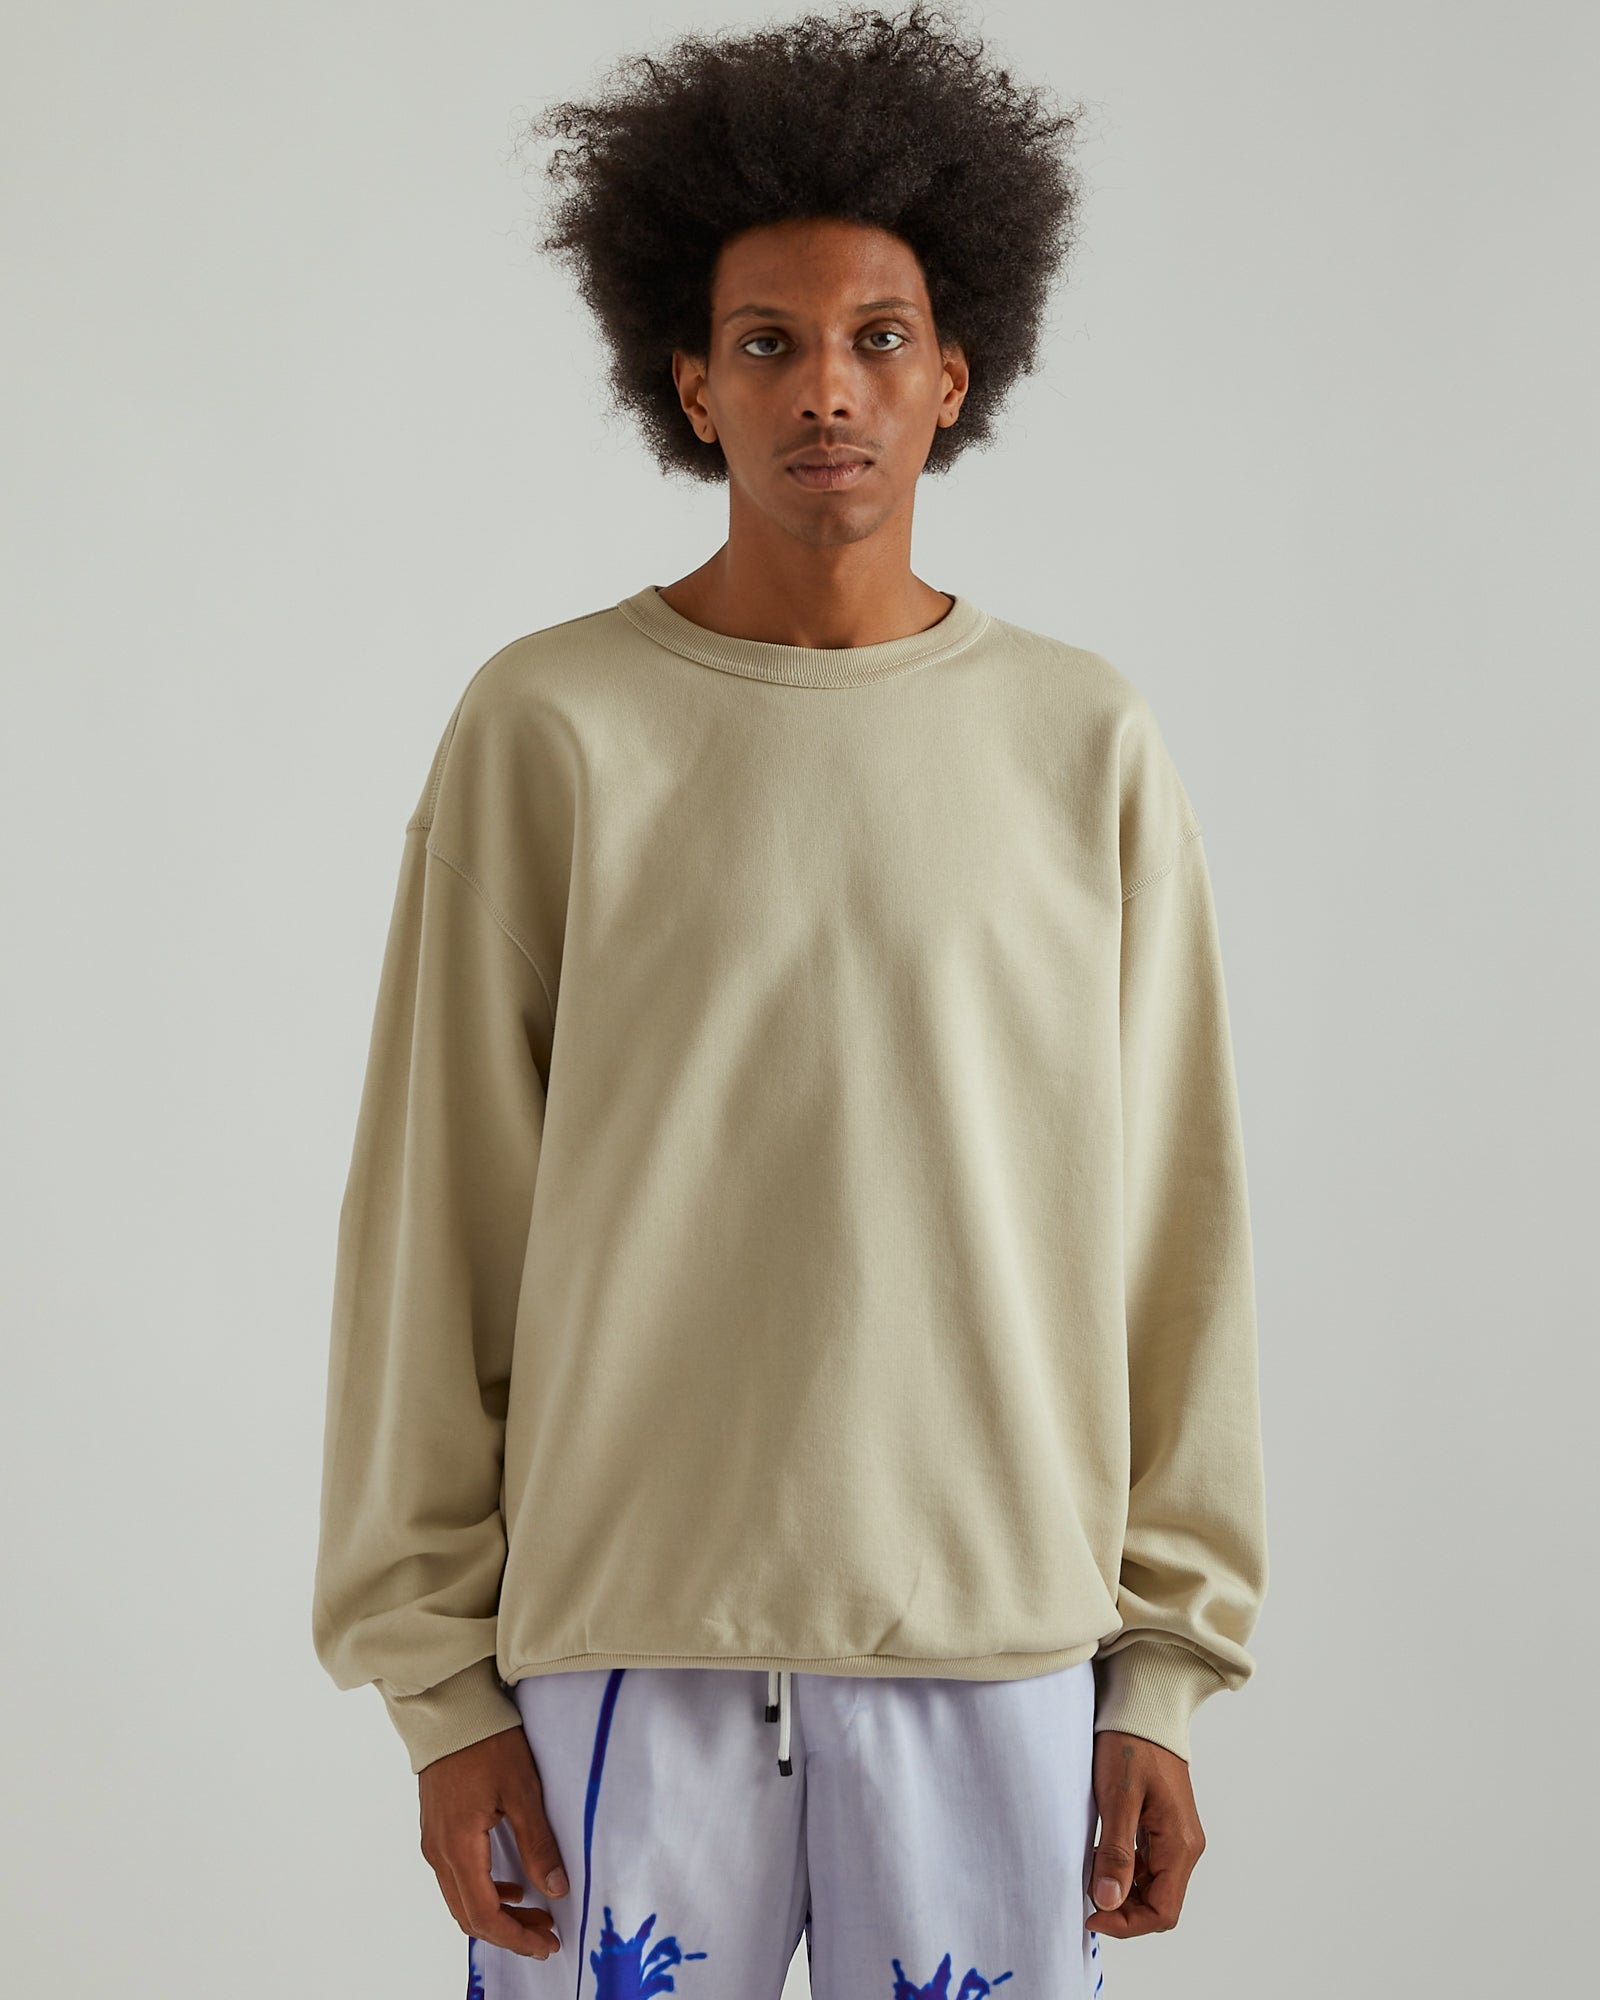 Haxti Sweater in Cement